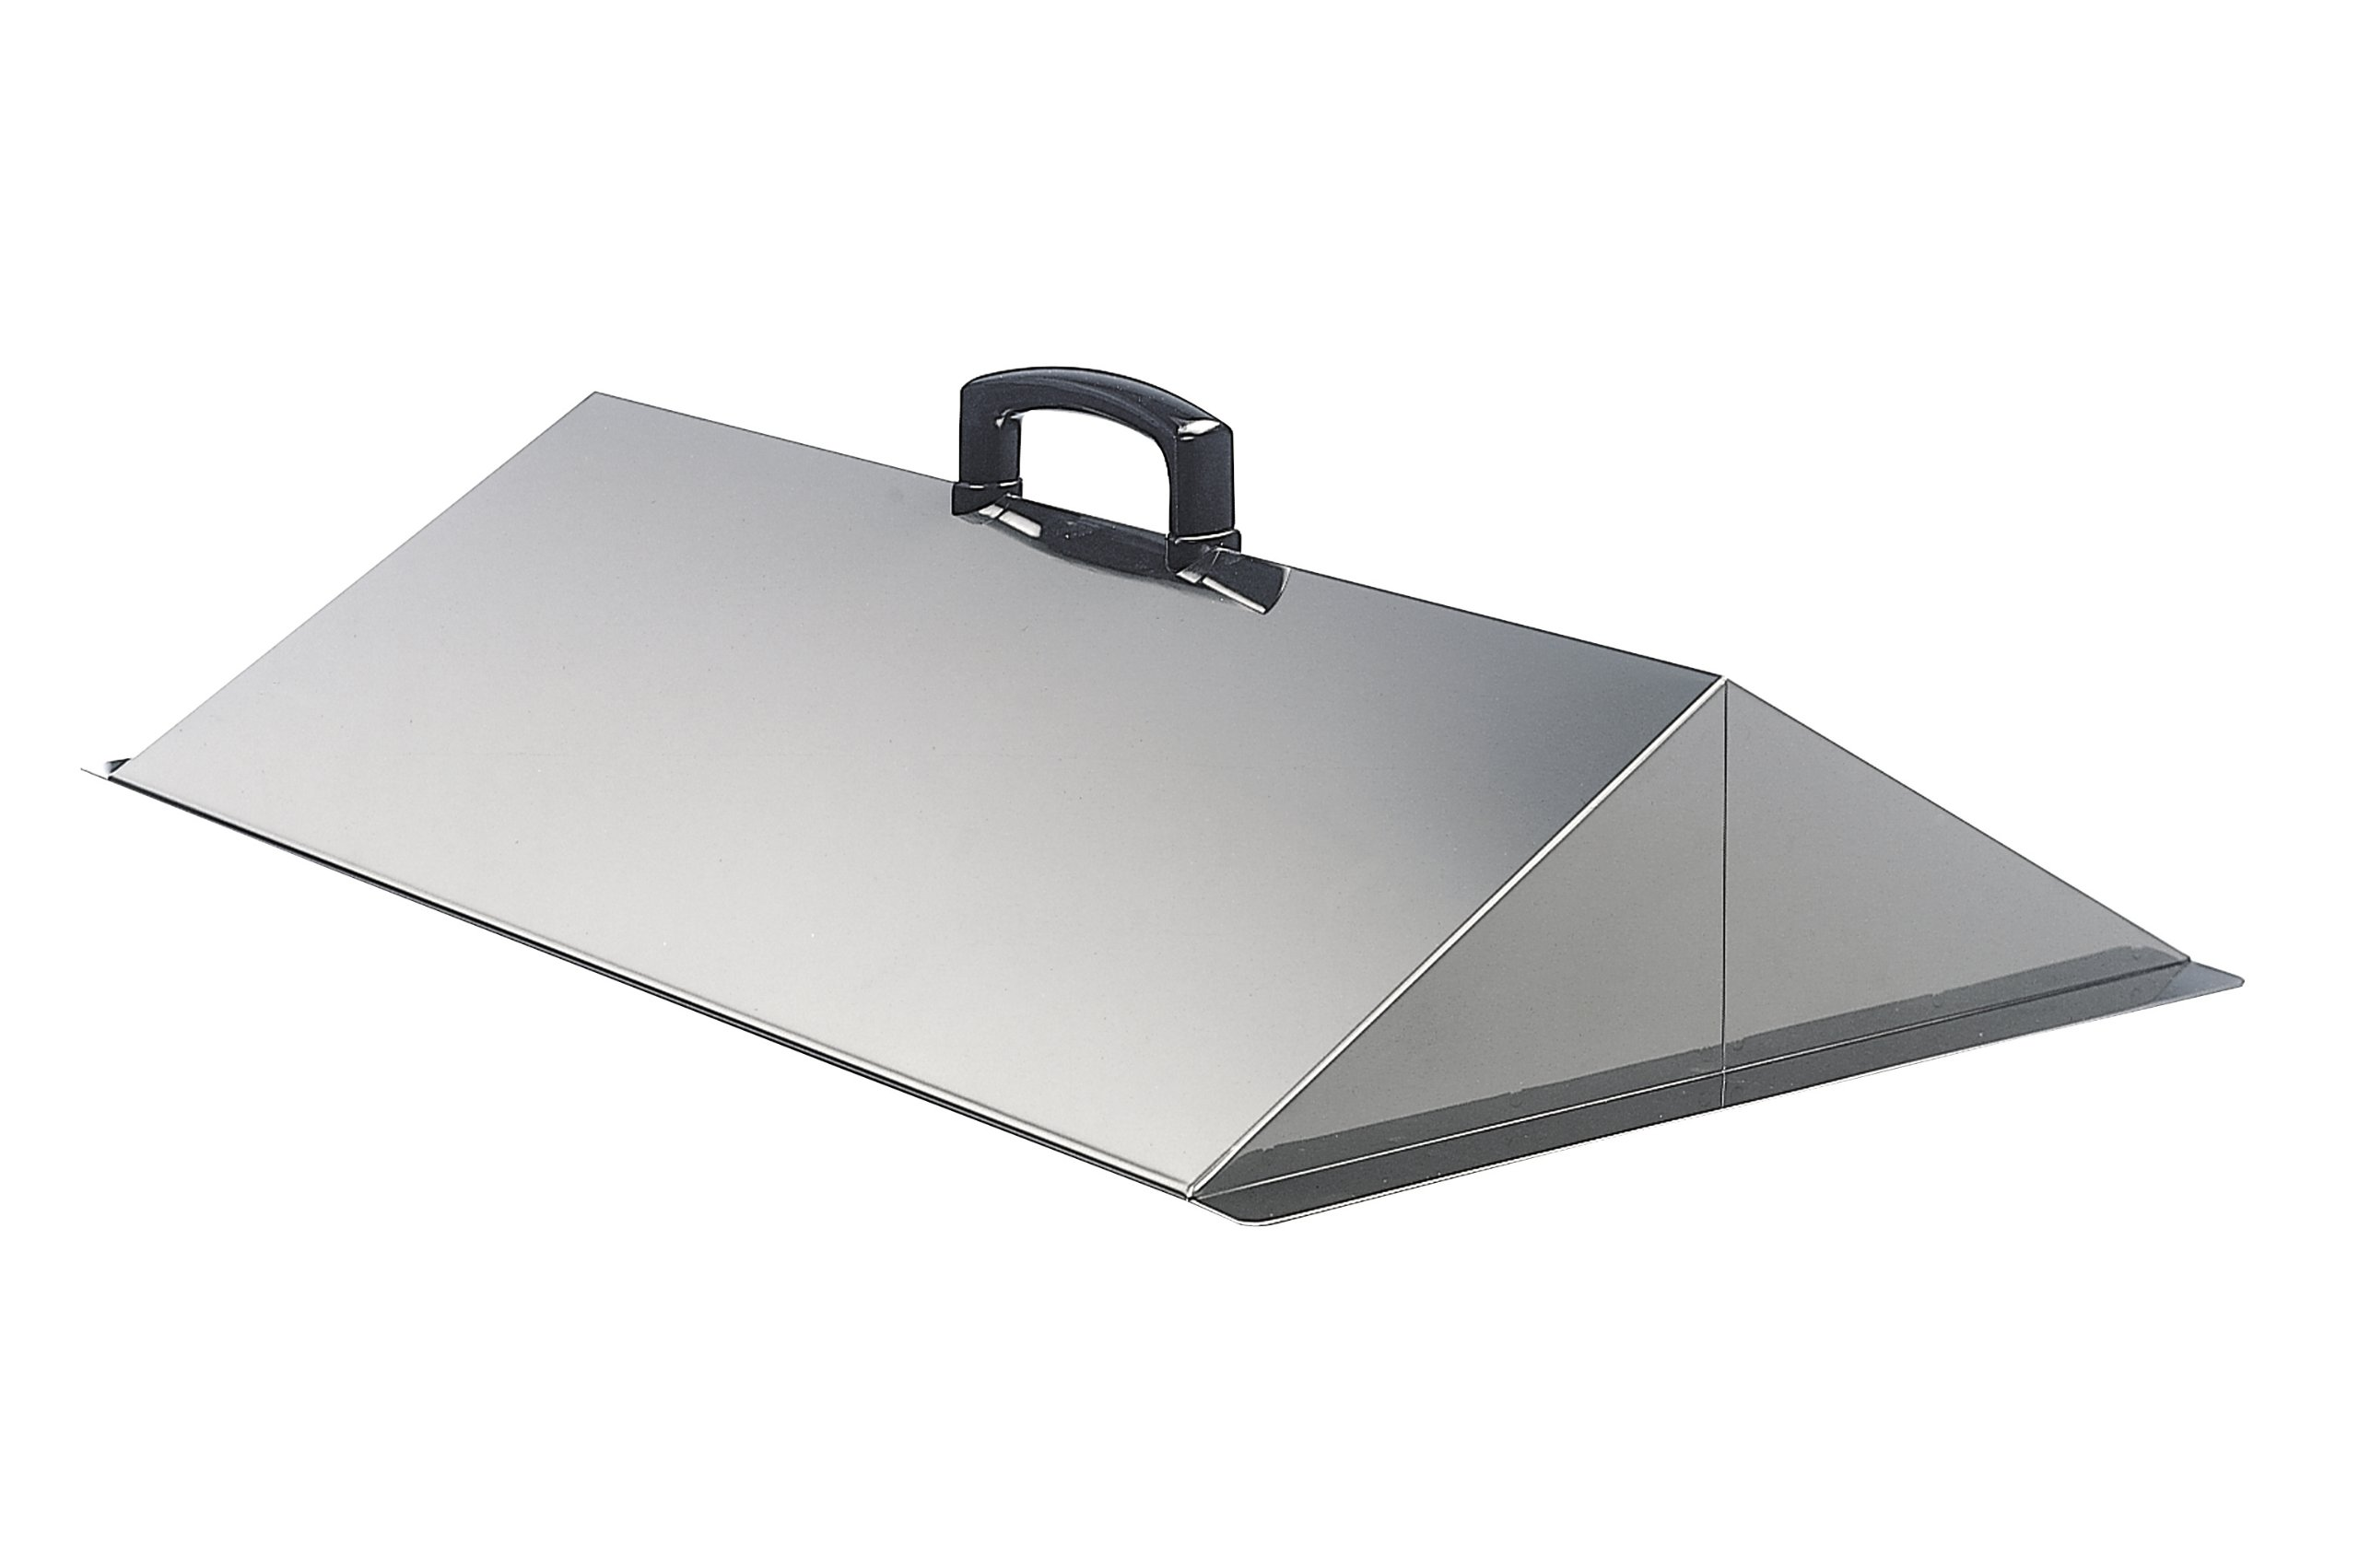 Grant Instruments LS200 Stainless Steel Sloping Lid for OLS26 US Shaking Water Bath